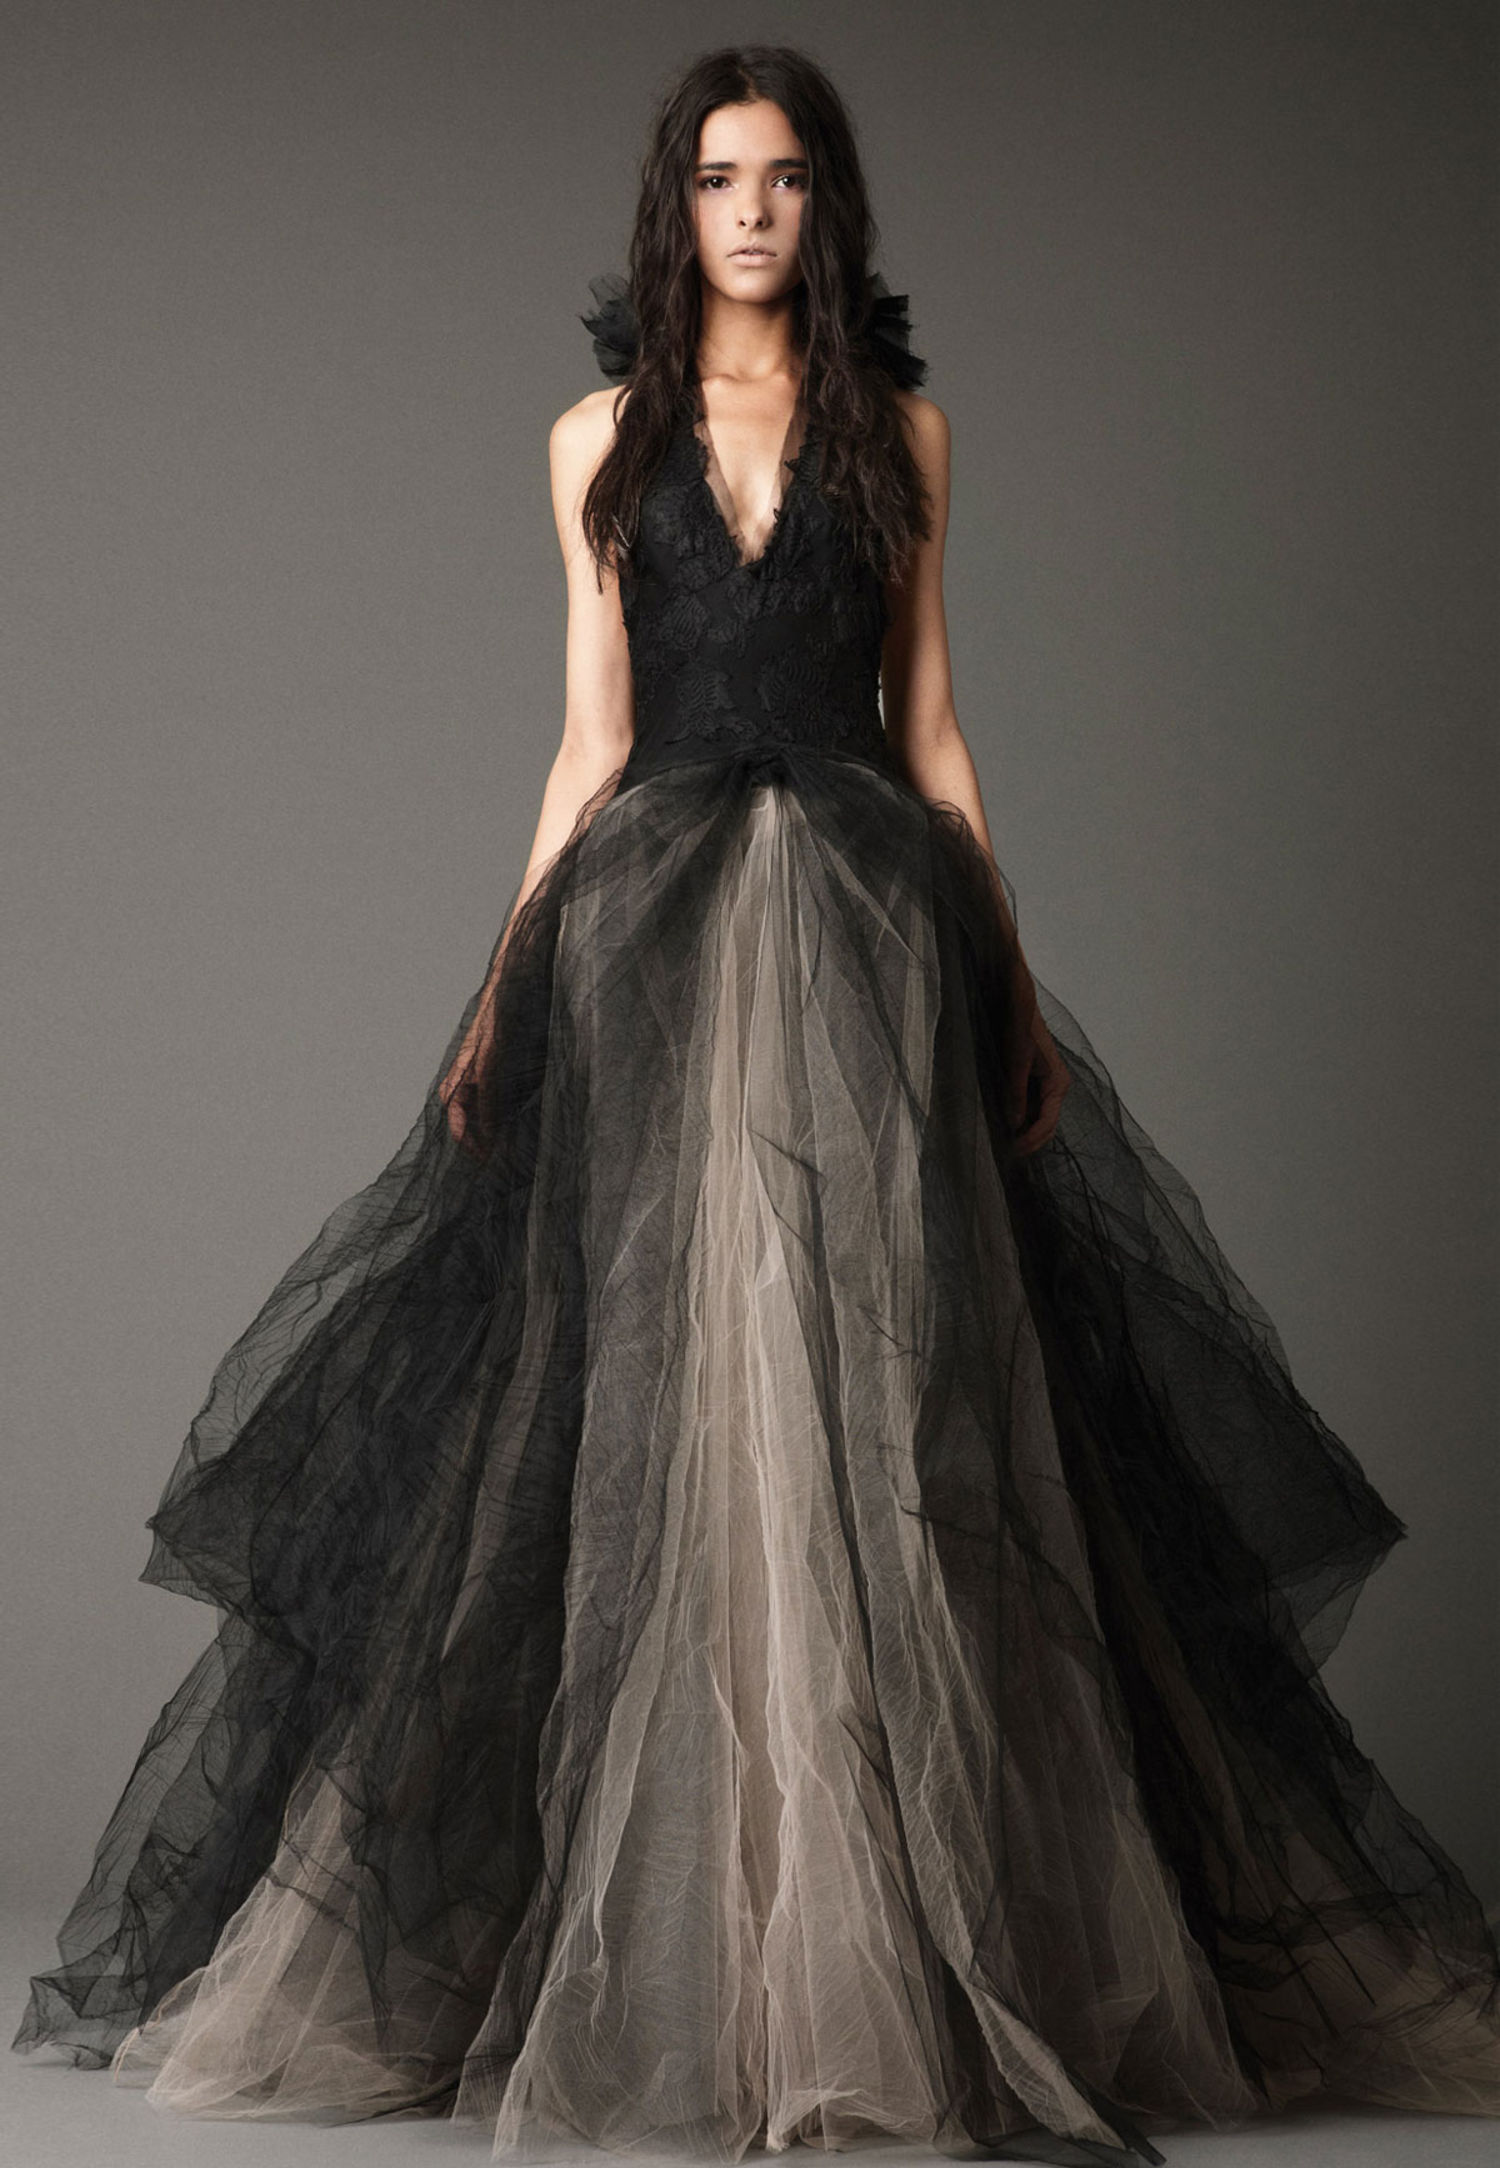 black wedding dresses black dresses for weddings Black Dress for Wedding